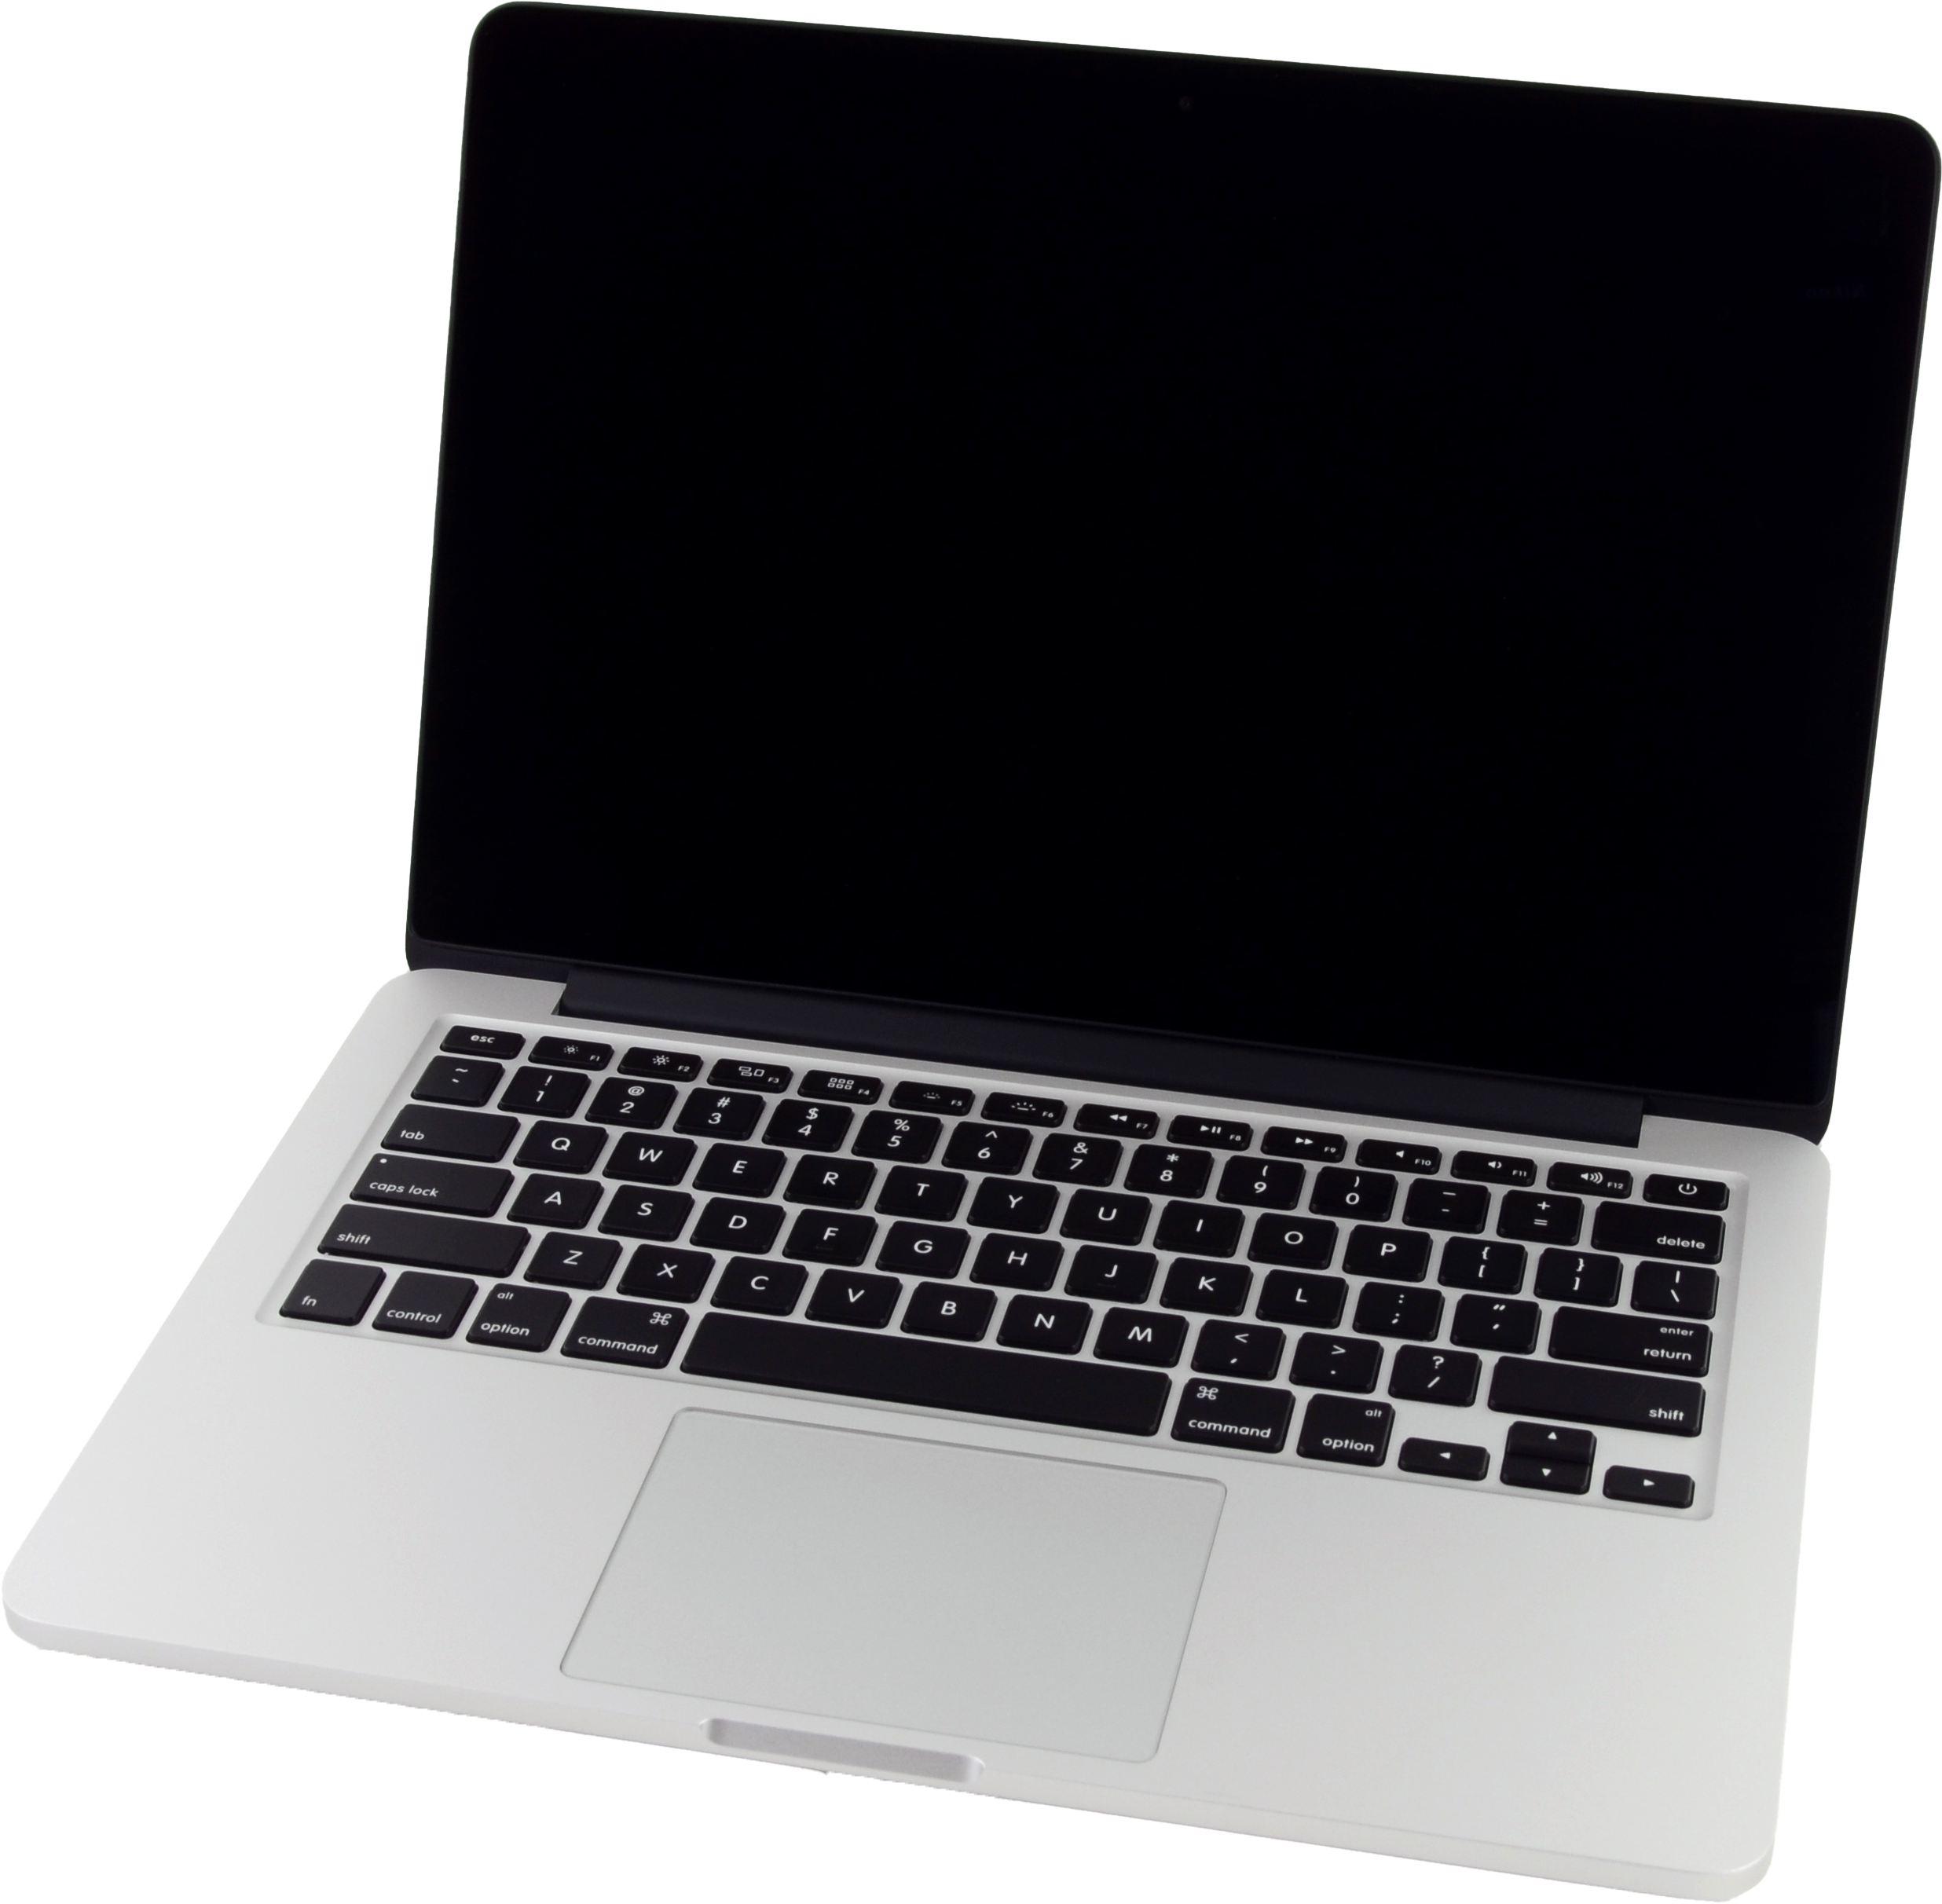 "Замена топкейса с клавиатурой (US)                                                                                                      MacBook Pro 13"" (A1502, 2013, Retina) фото 8"